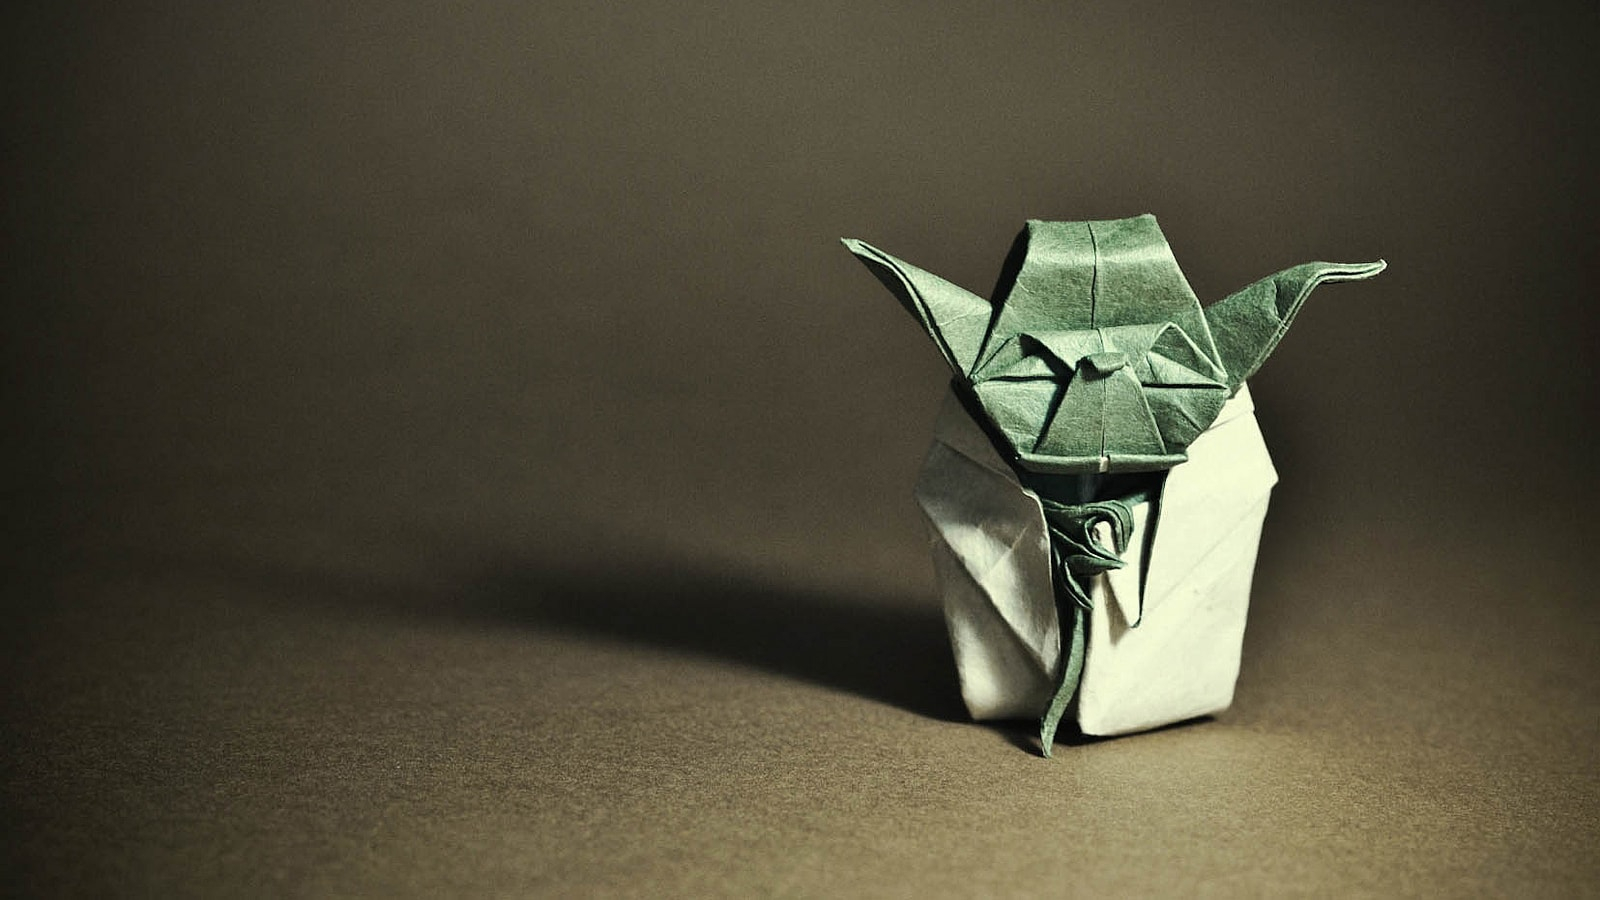 Origami Star Wars Characters Some Of My Favourite Star Wars Origami To Celebrate Star Wars Day